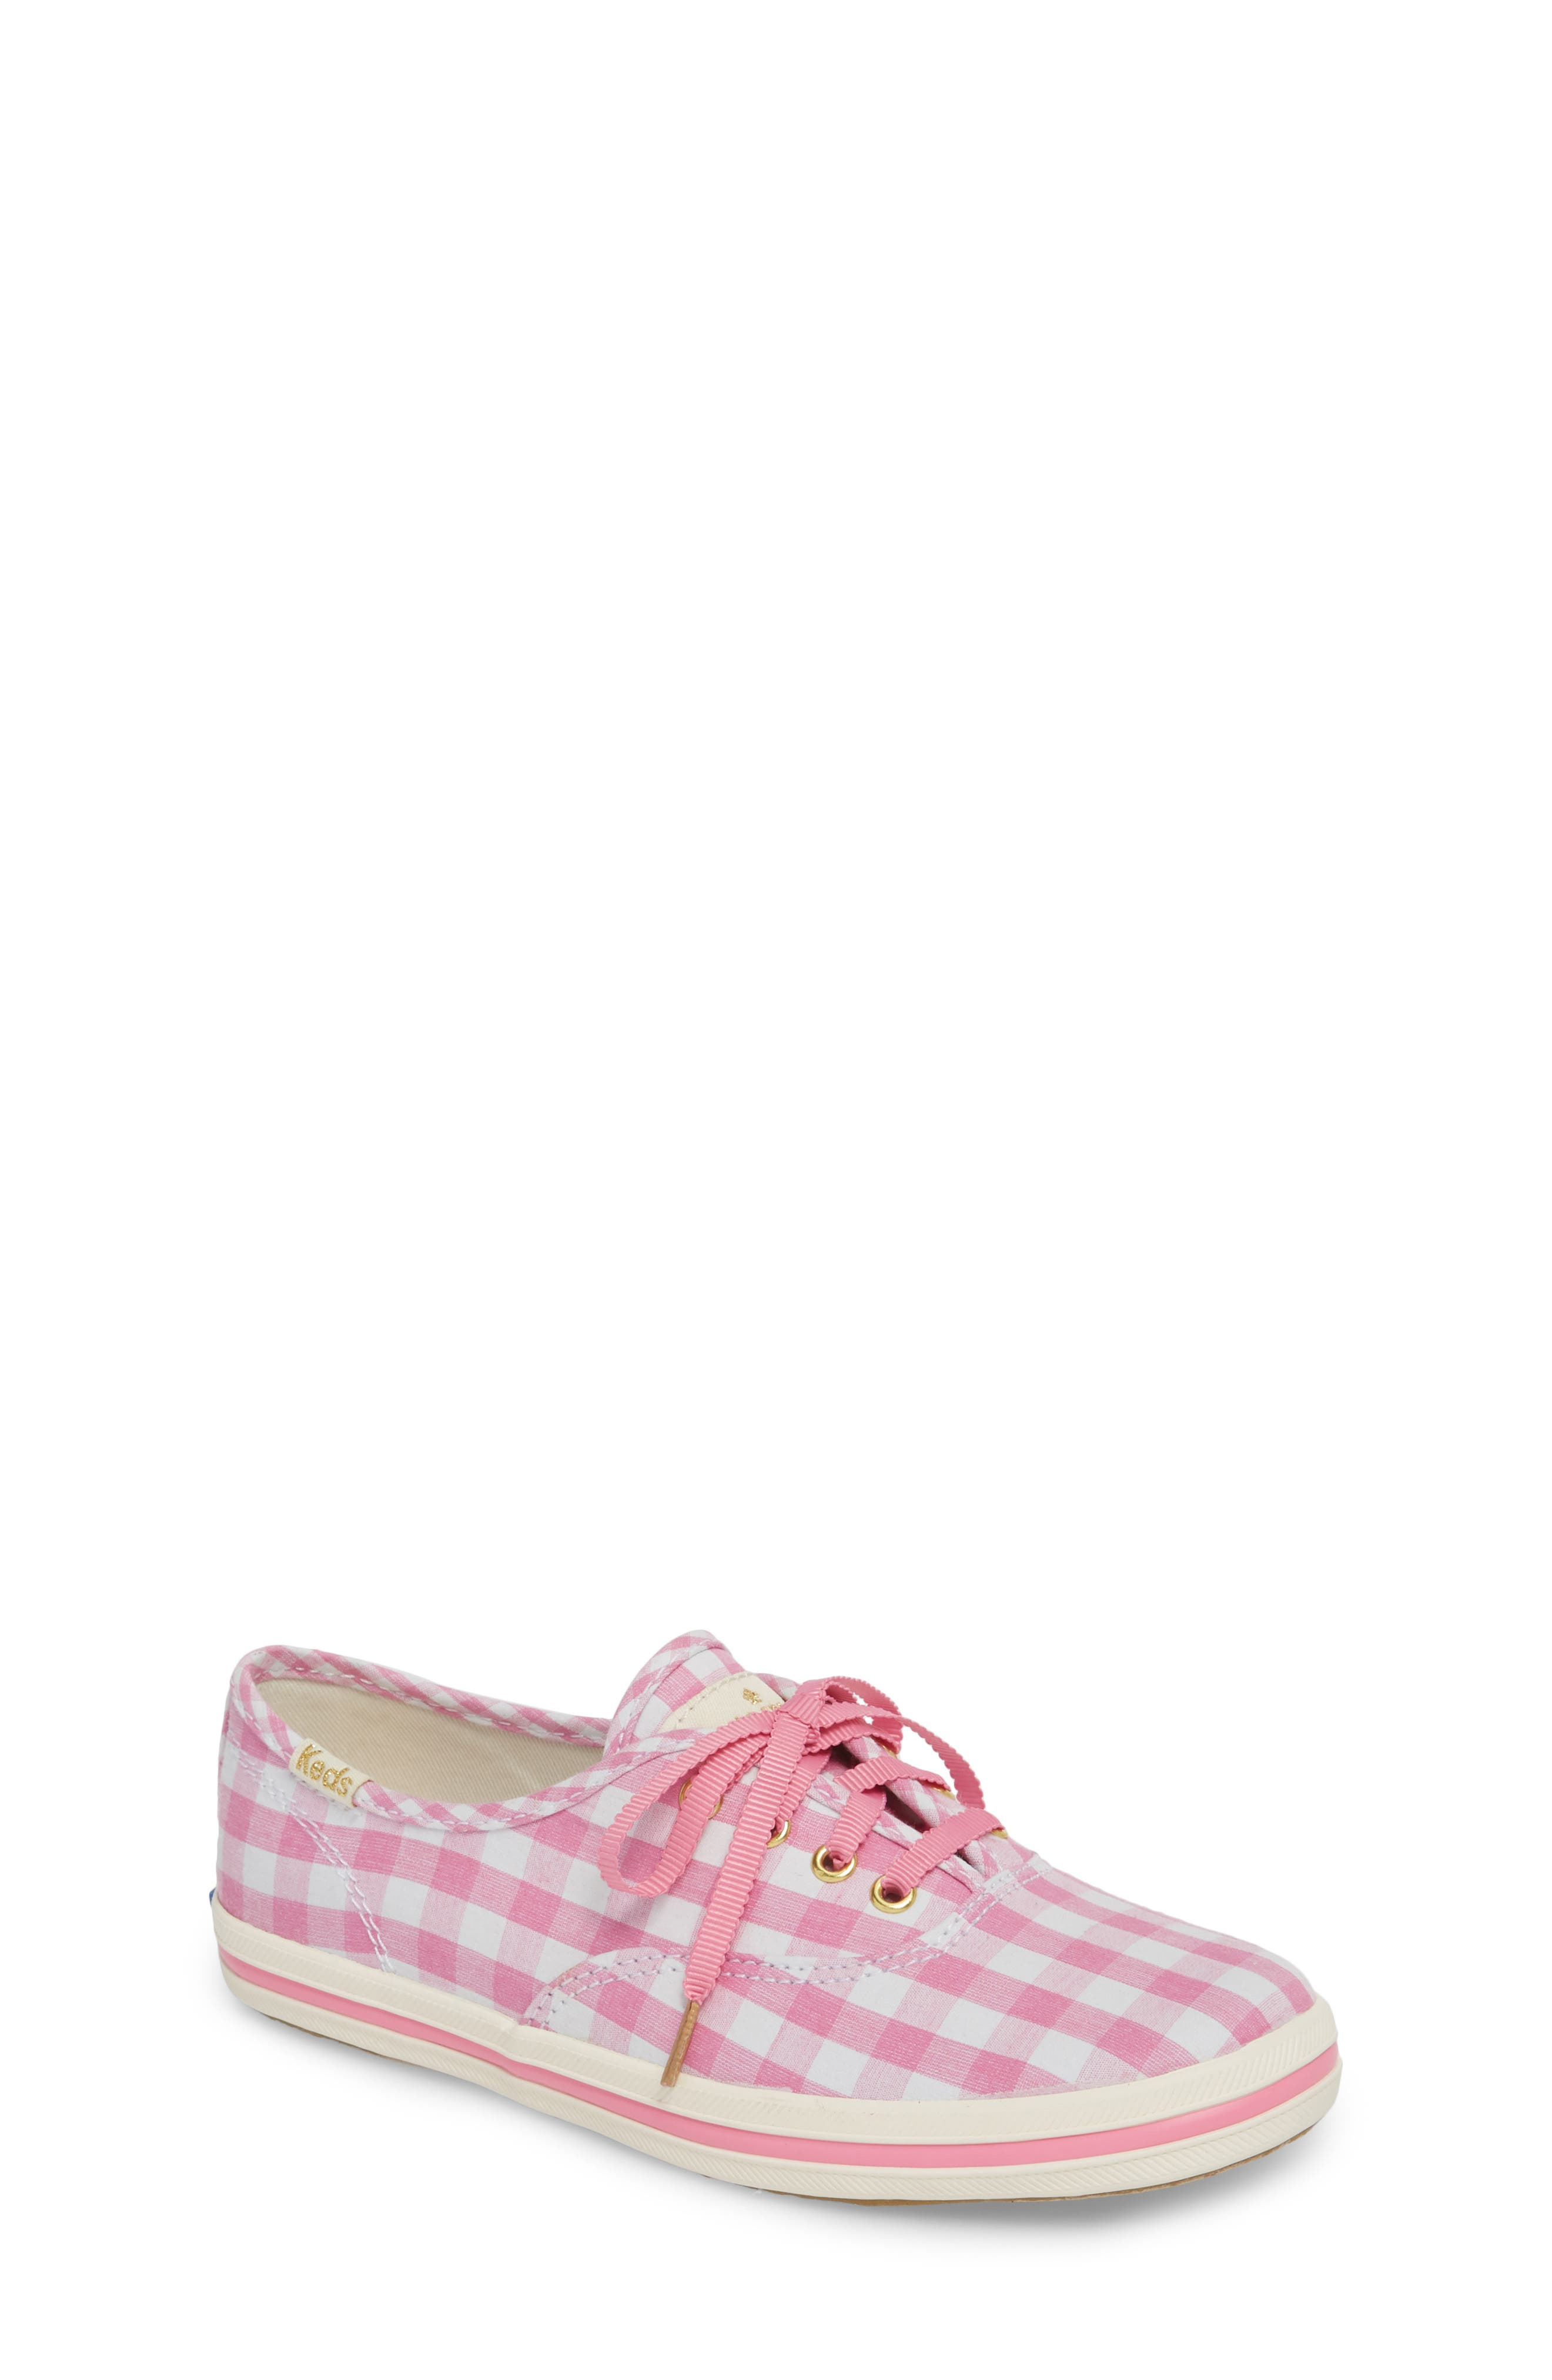 x kate spade new york champion gingham lace-up shoe,                             Main thumbnail 1, color,                             Pink Gingham